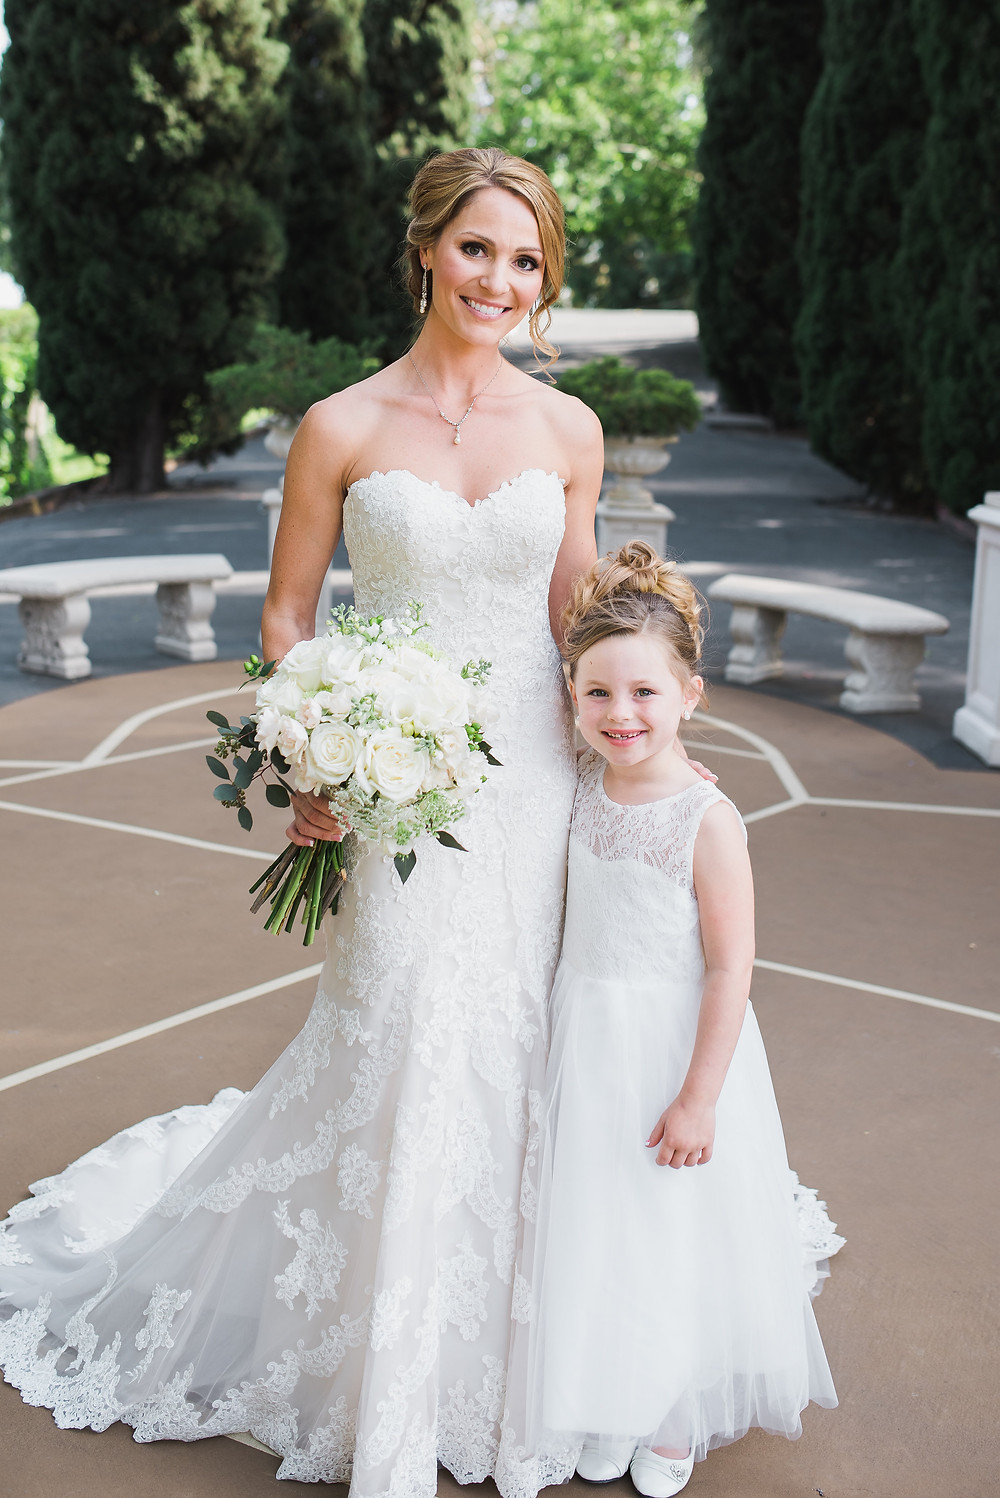 Bride & Flower Girl  | Visual Impact Design wedding flowers | Custock Photography